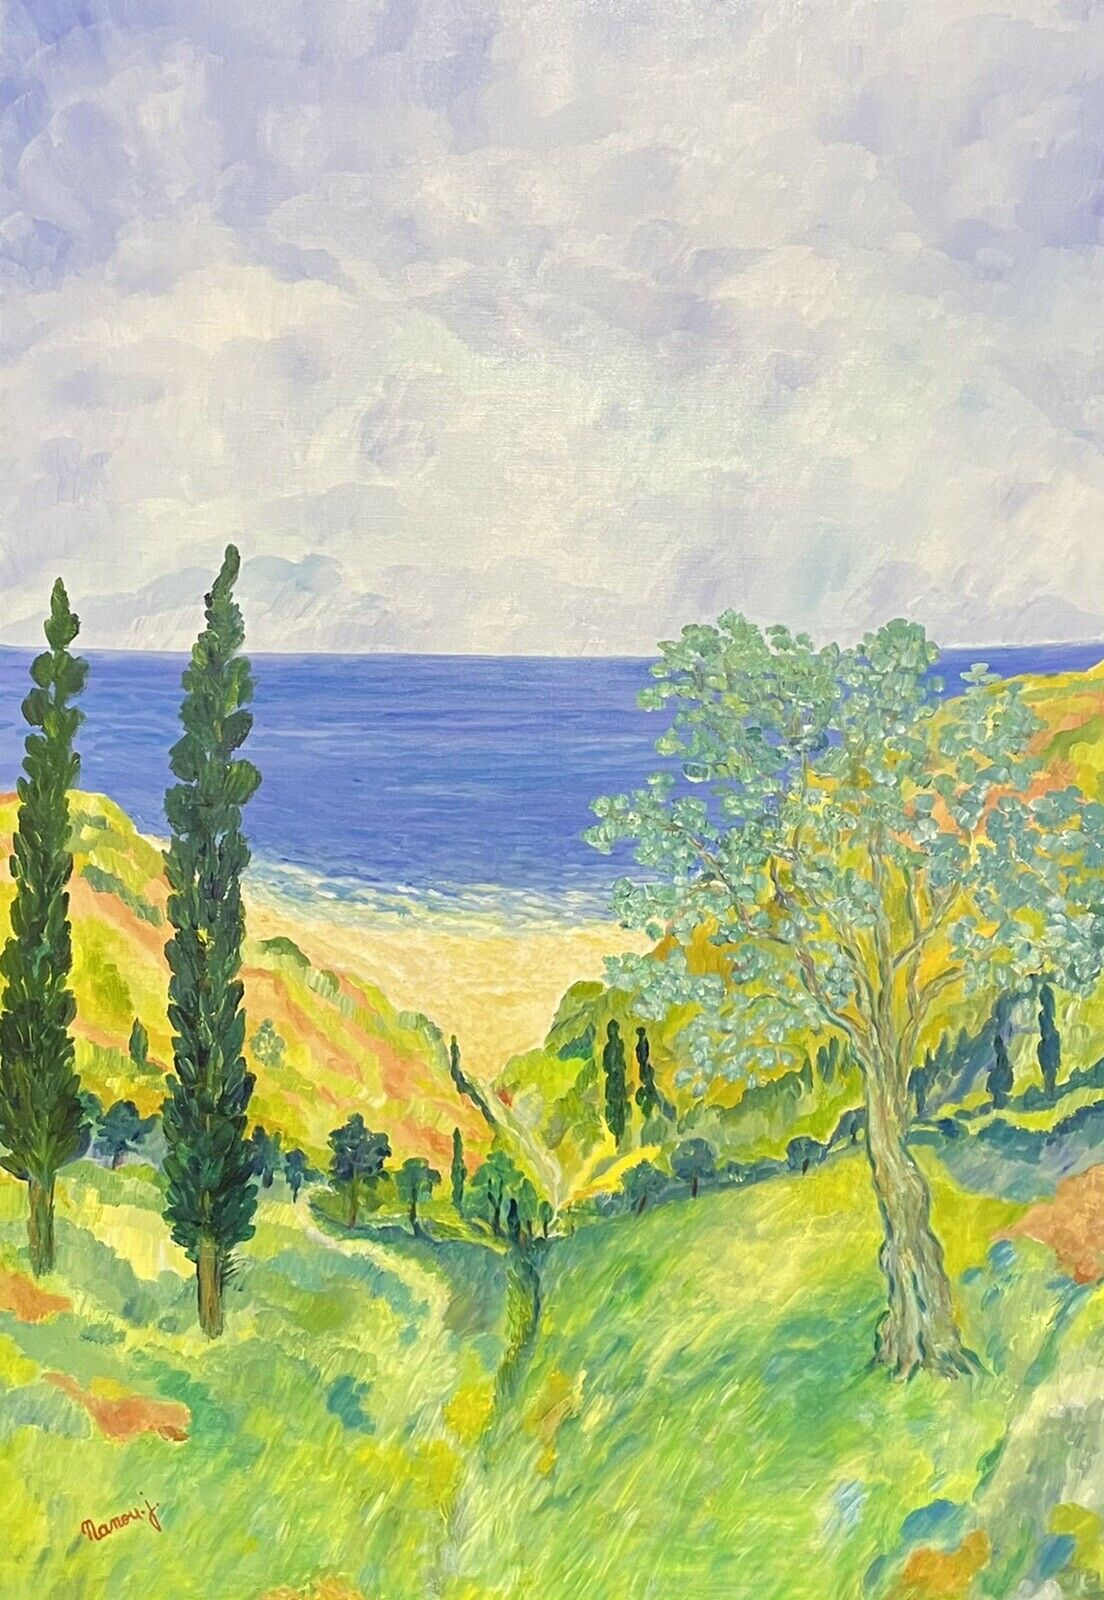 HUGE 20TH CENTURY FRENCH IMPRESSIONIST SIGNED OIL - COTE D'AZUR PROVENCE VIEWS